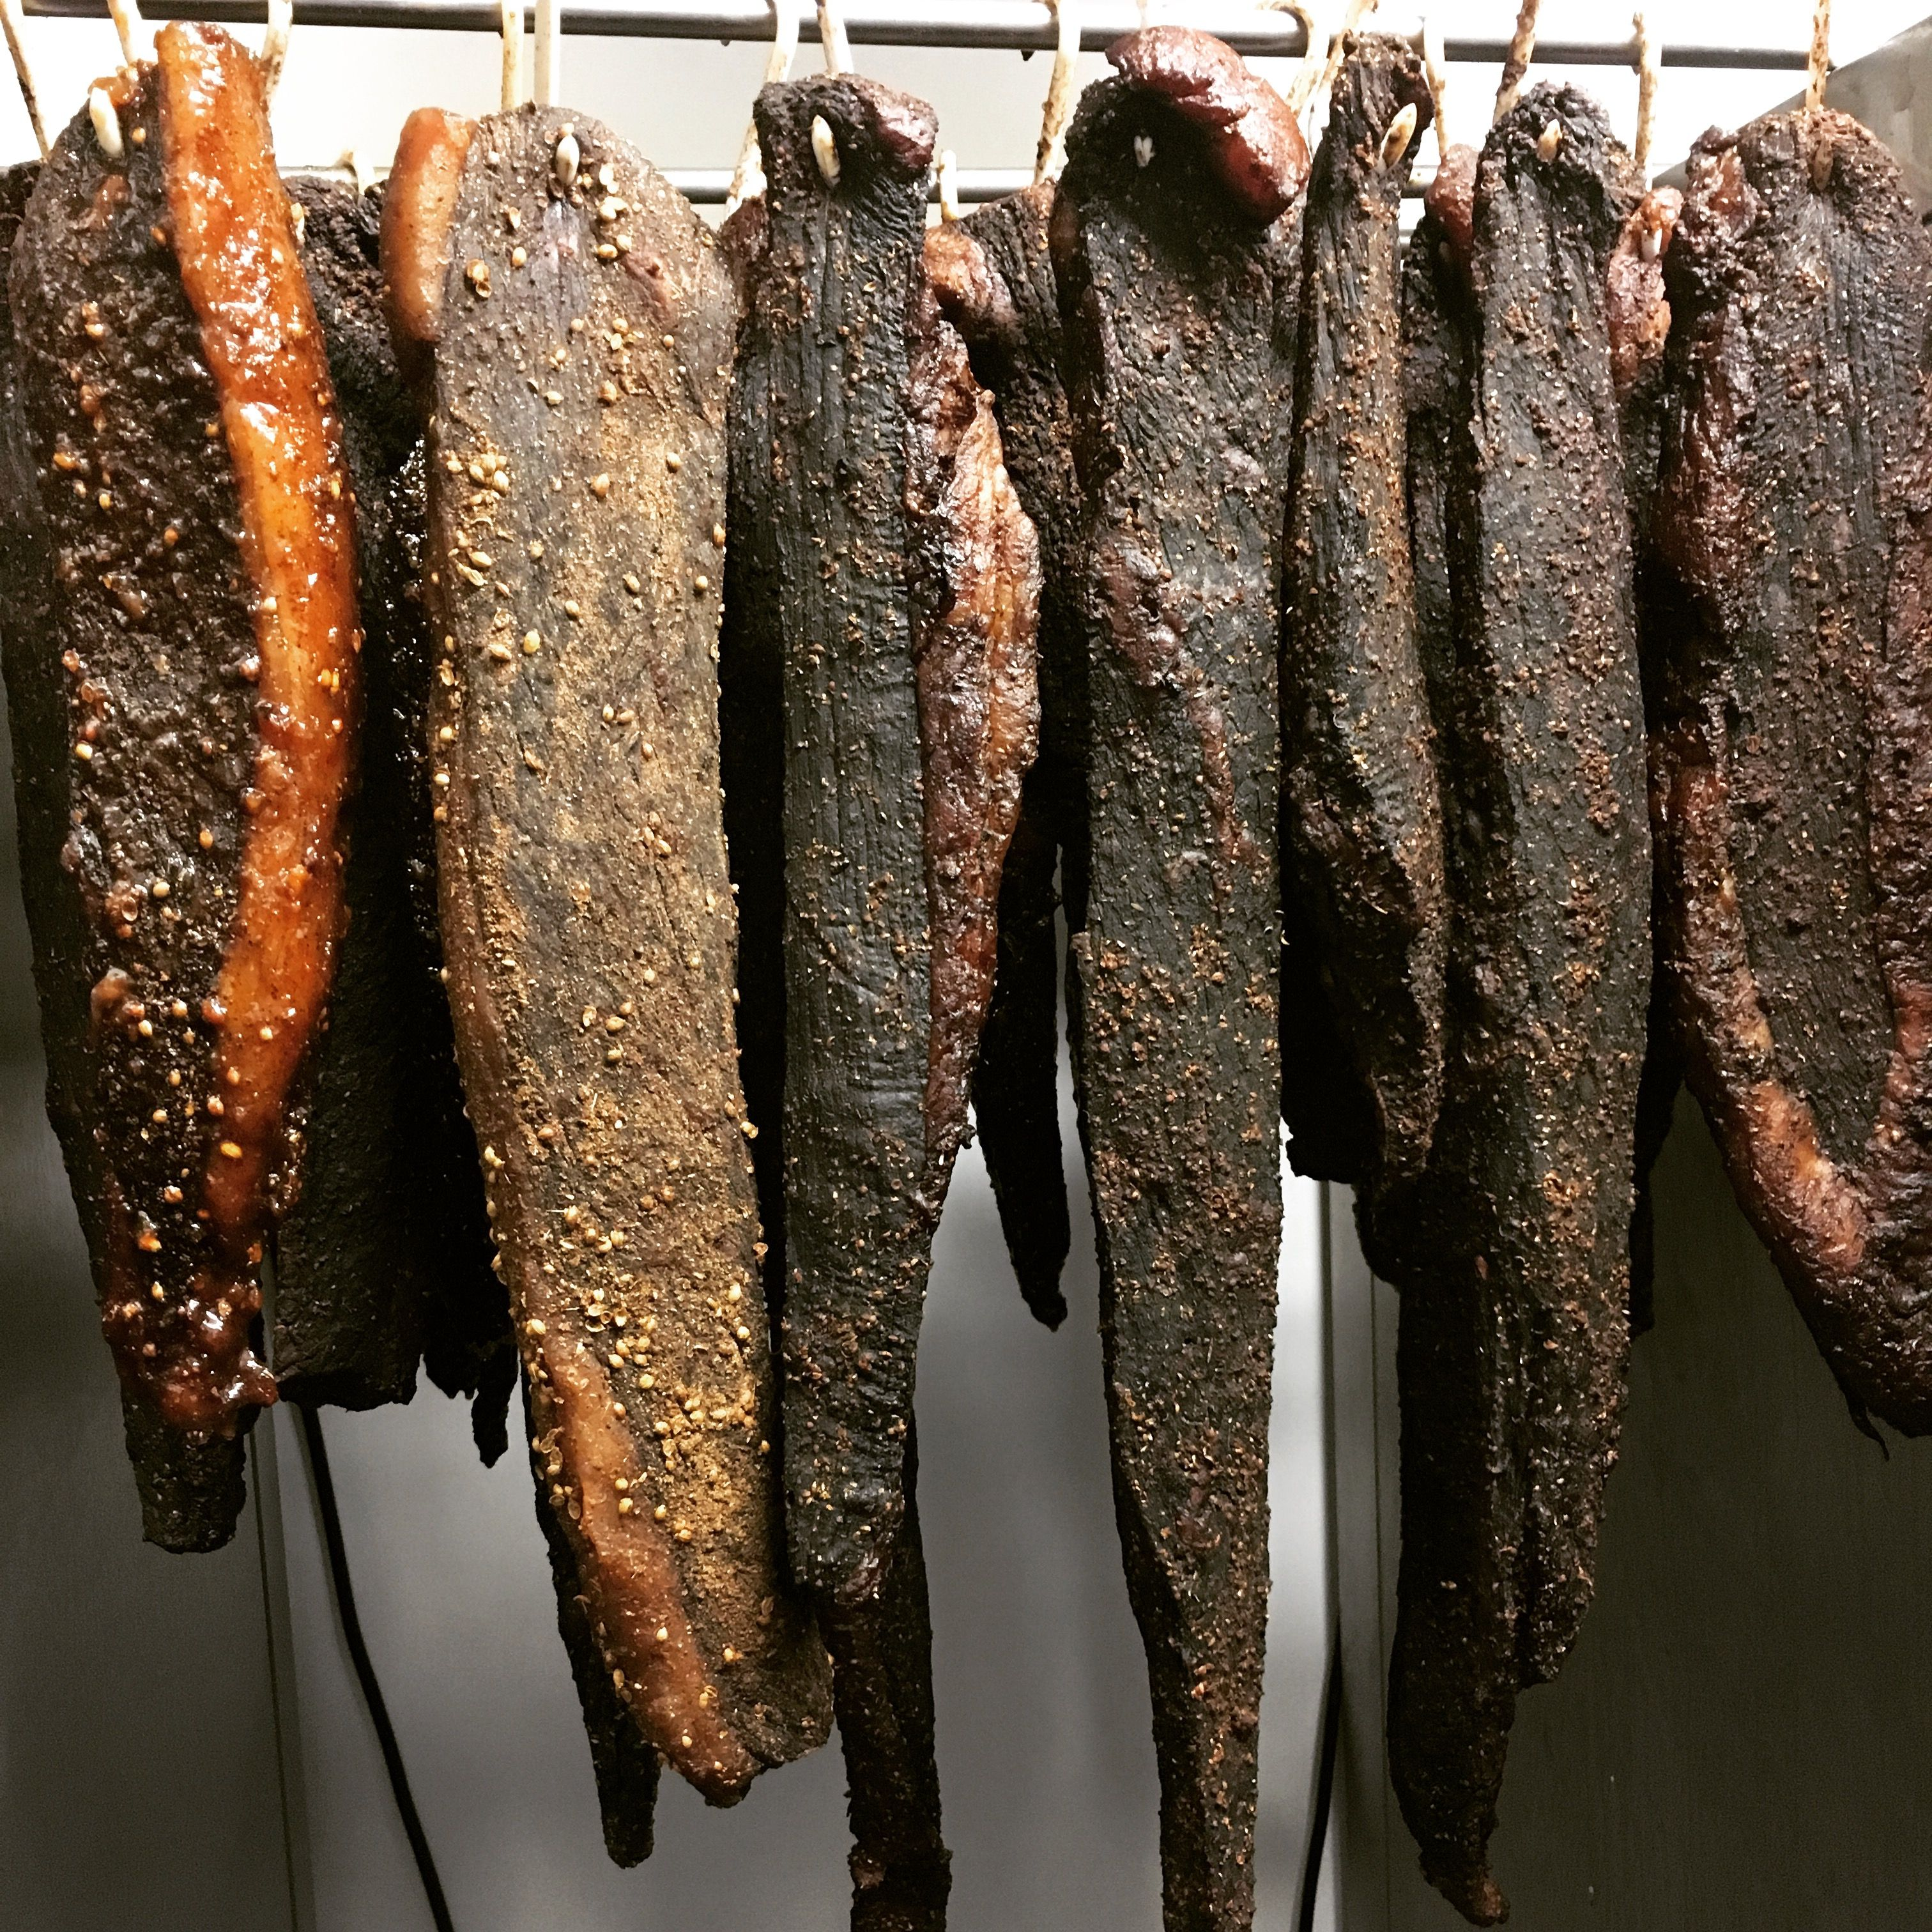 Various Wagyu Biltong sticks. The ones on the left have simple homemade Biltong spice (